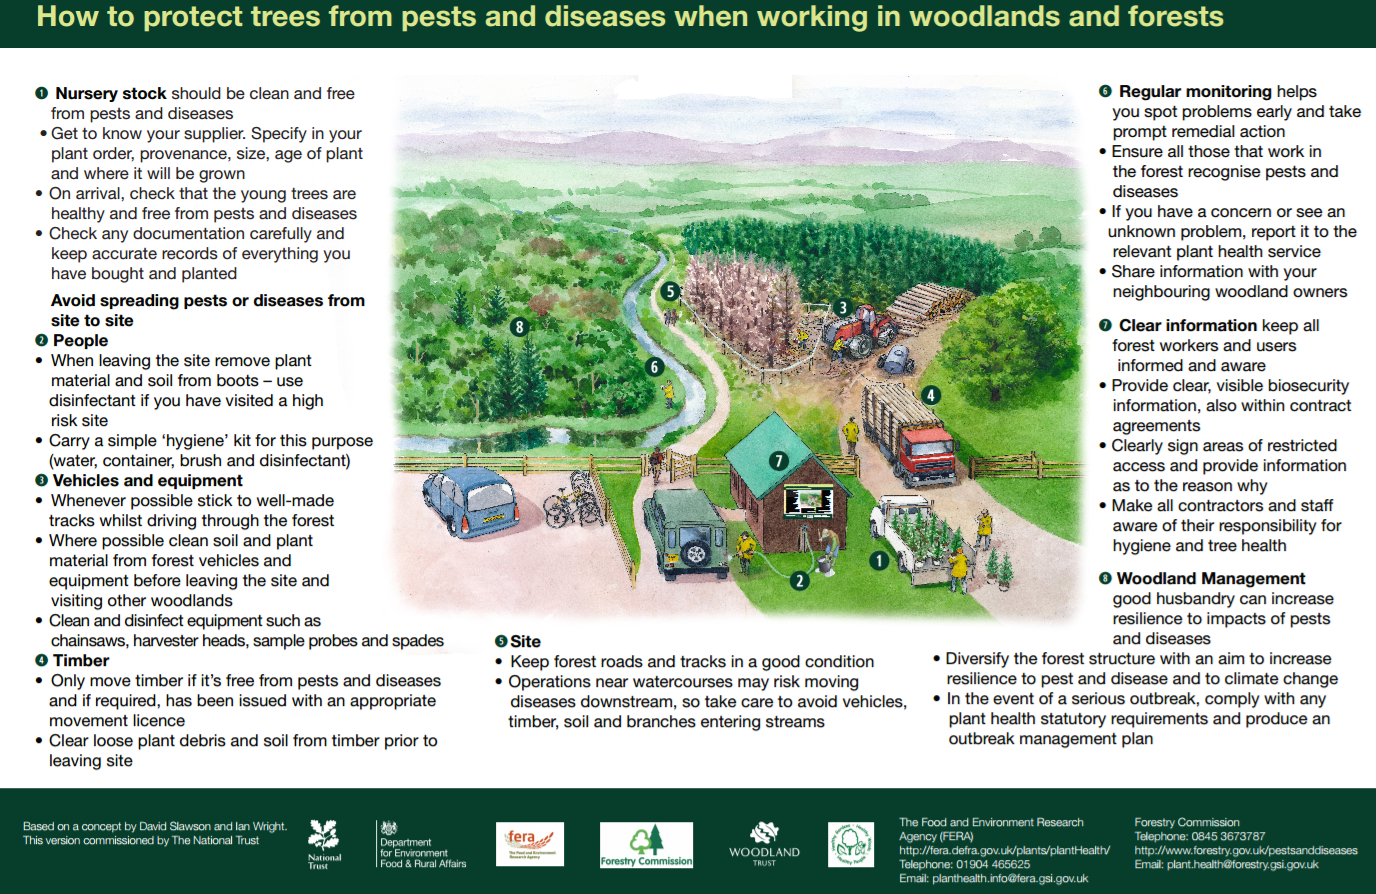 Biosecurity - Protecting Trees from Pests and Diseases